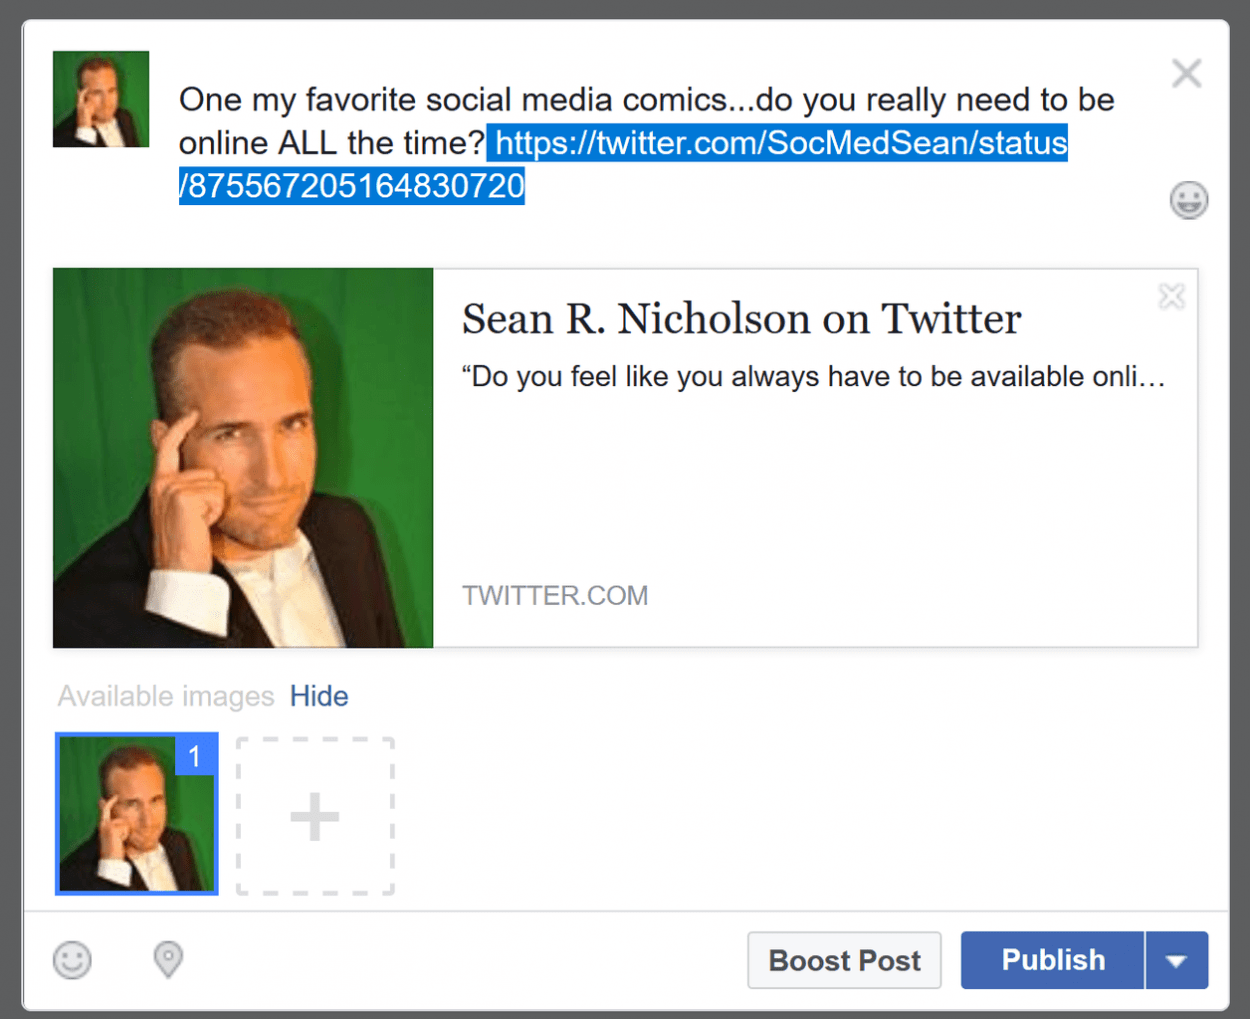 Step 4 in posting a tweet to Facebook is just pasting the URL to the tweet to your Facebook status update and then publishing it.